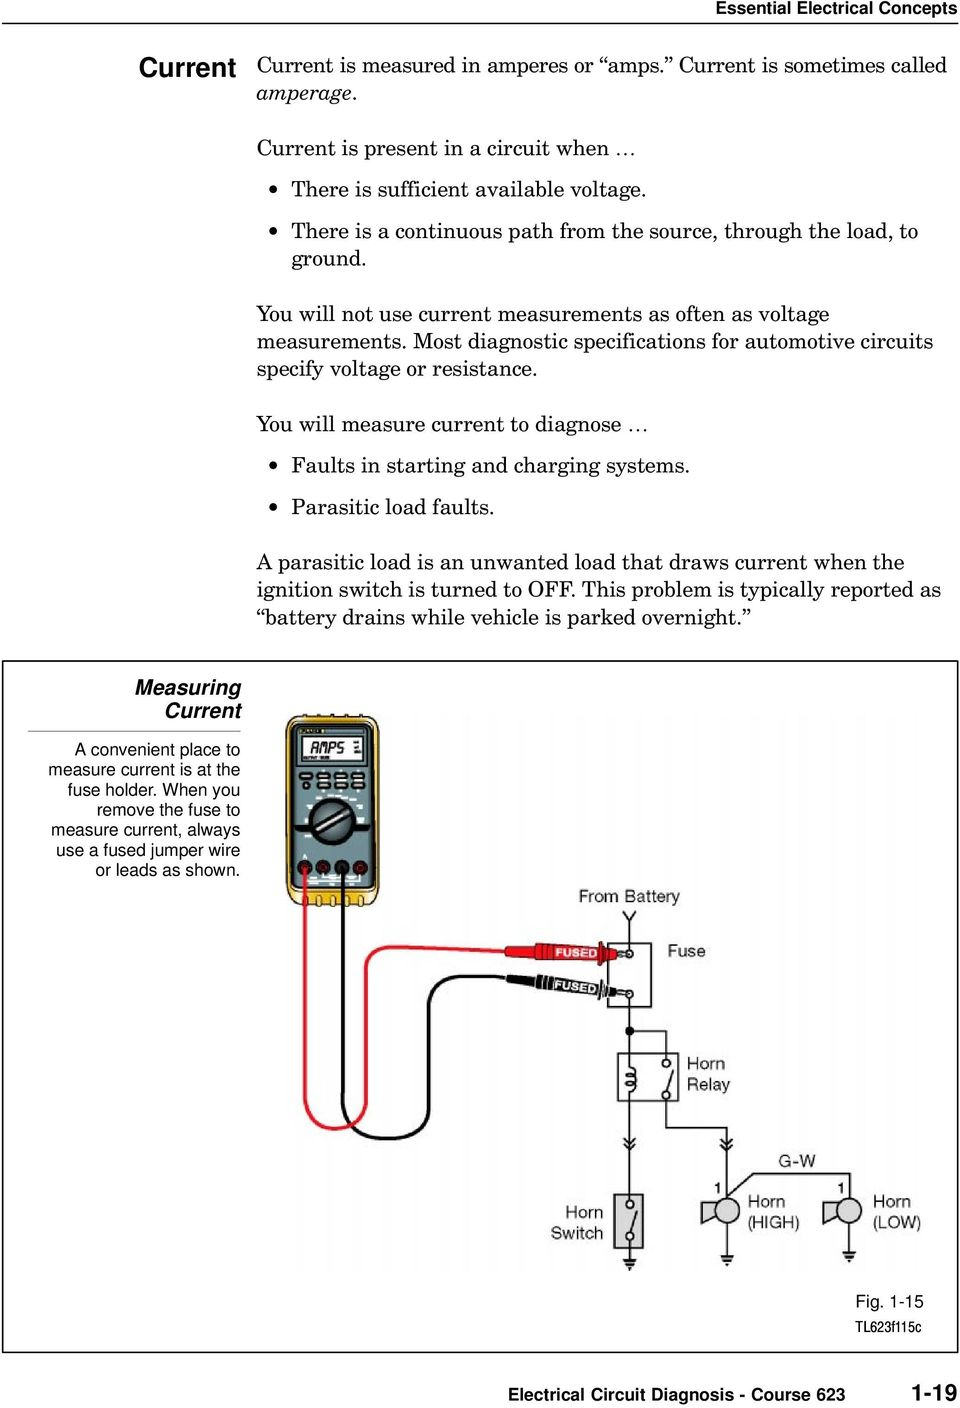 Essential Electrical Concepts Pdf Measuring Resistance In Circuit And Out Most Diagnostic Specifications For Automotive Circuits Specify Voltage Or You Will Measure Current To